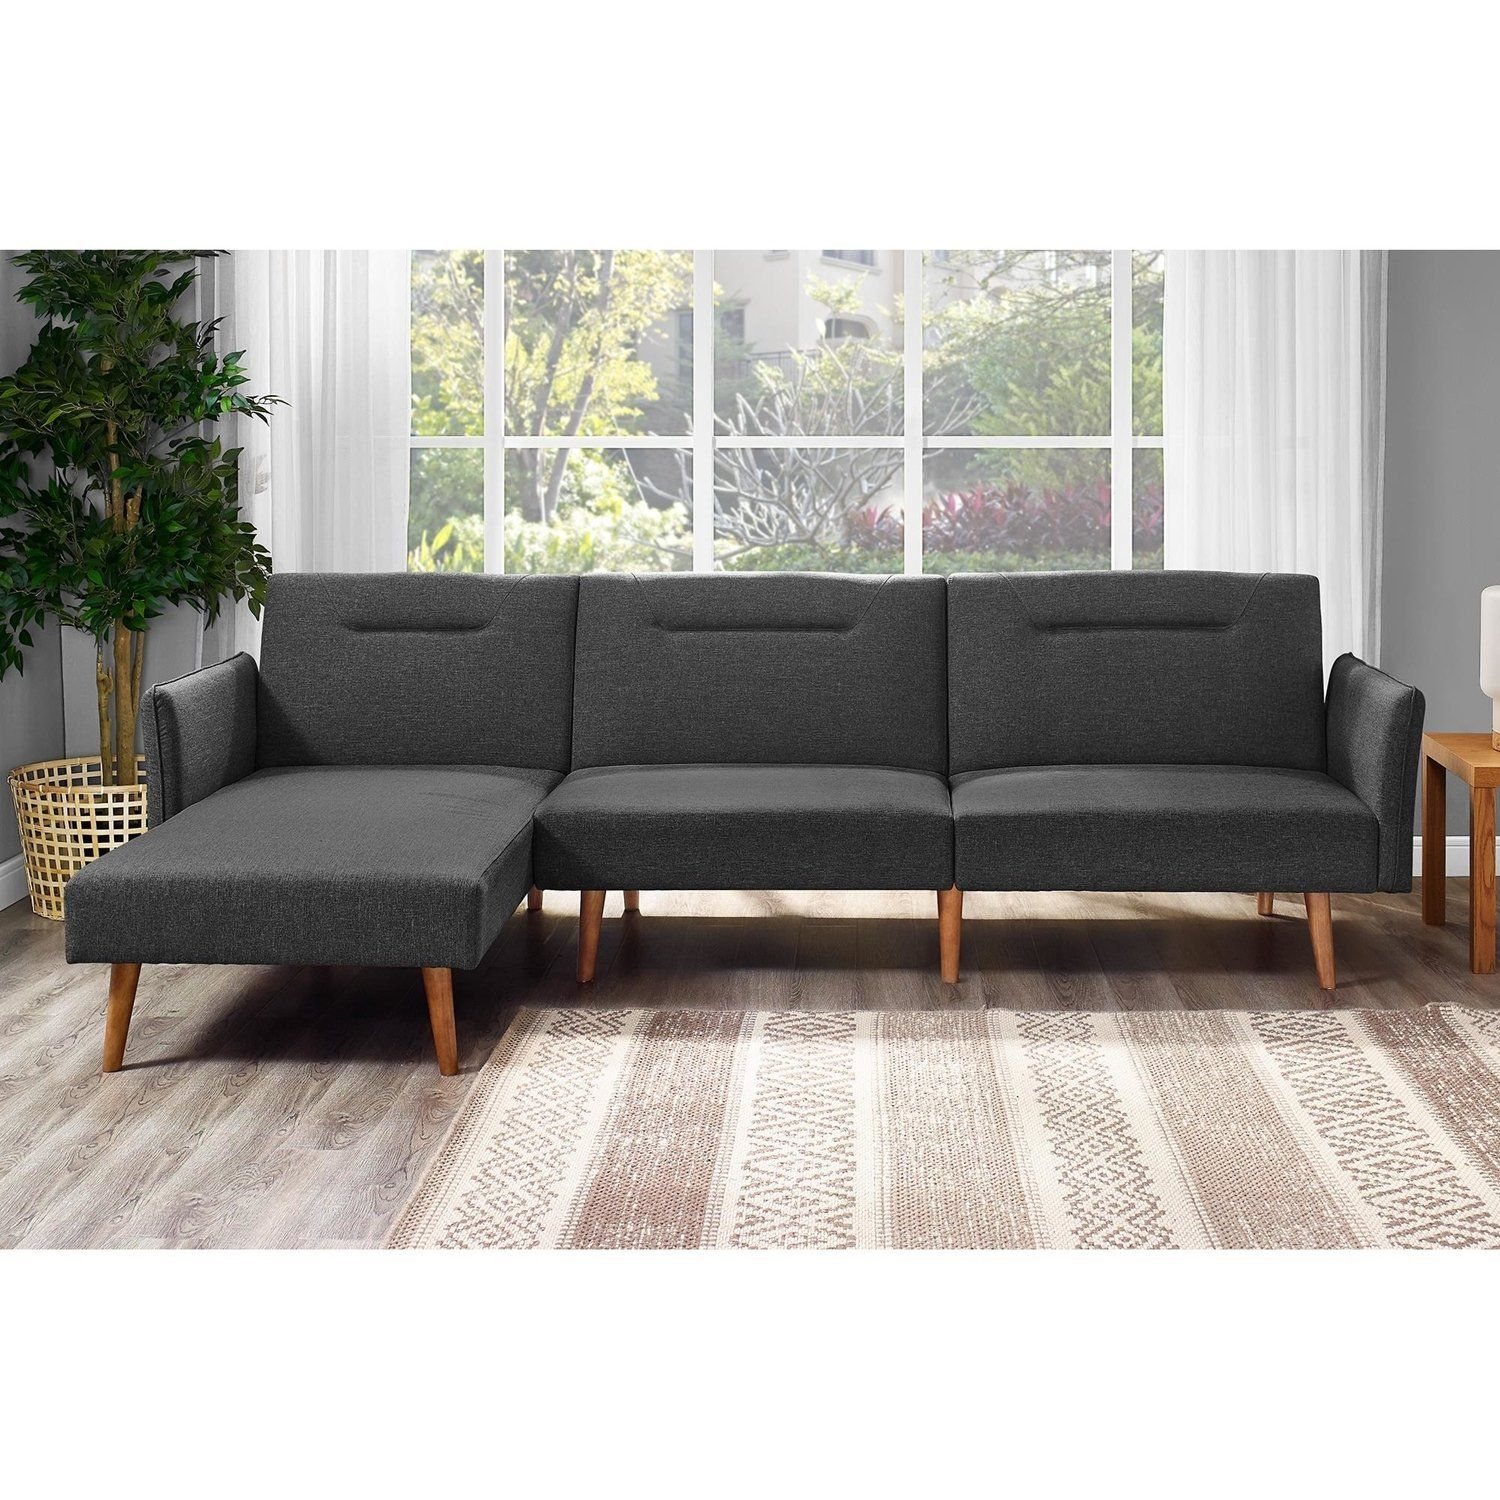 Amazon Sofa Bed Grey Langley Street Fresno Sleeper Sectional Sofa Bed Grey Amazon Ca